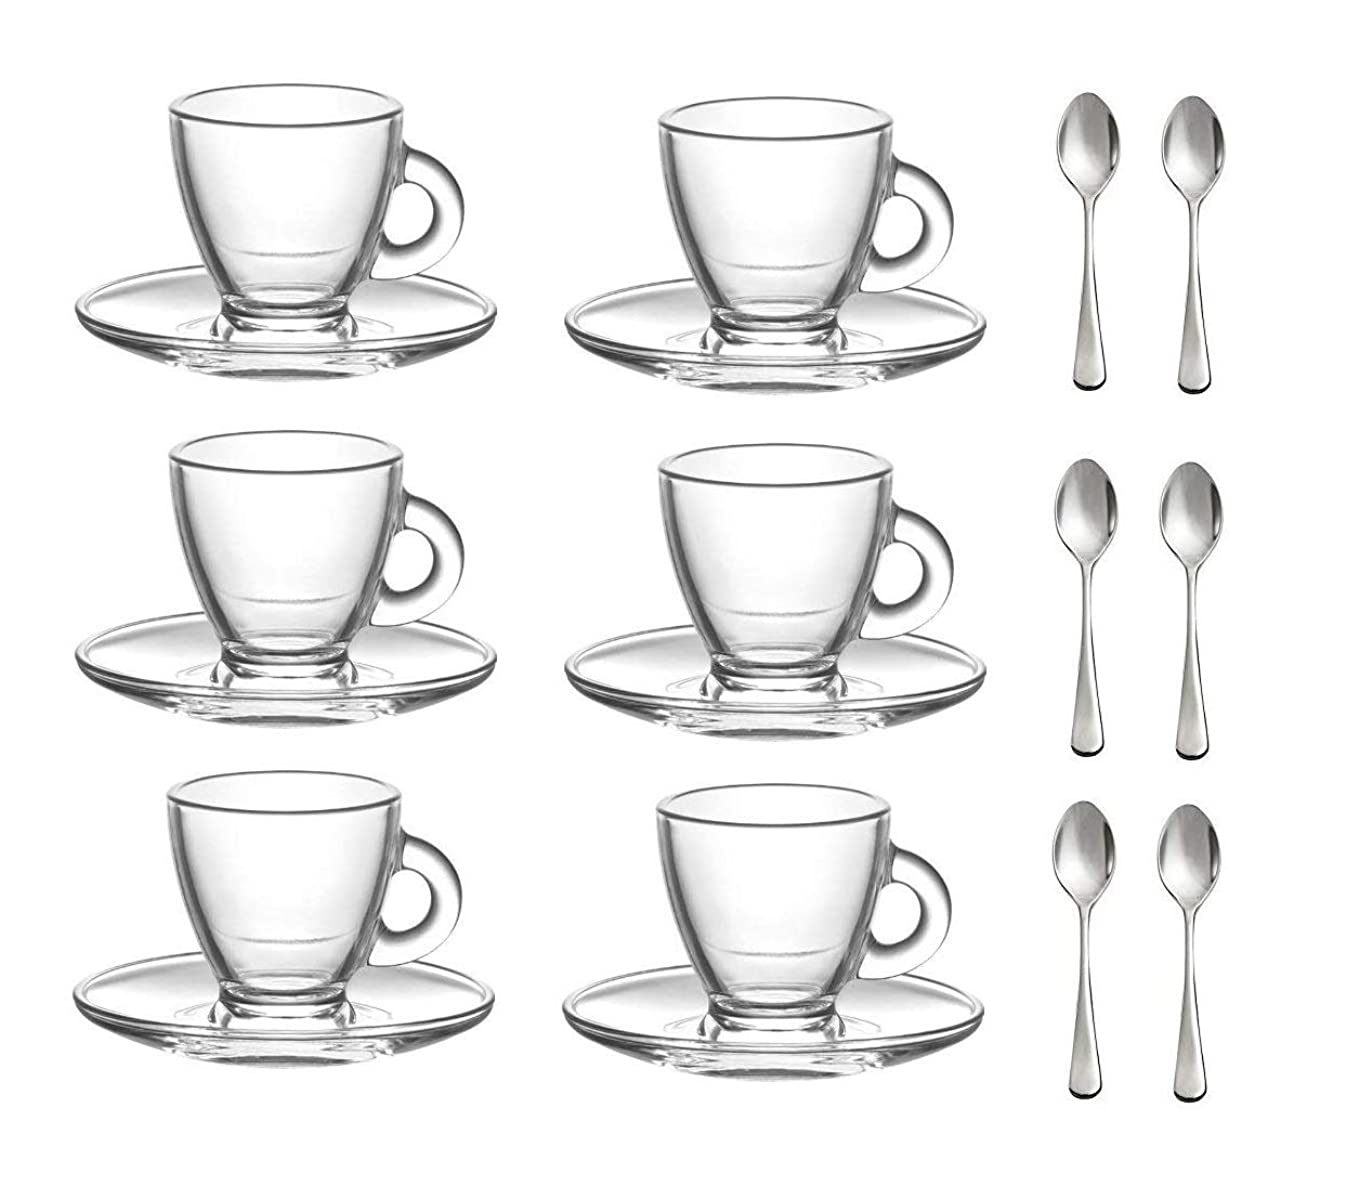 Roma 3.2-Ounce. Small Demitasse Clear Glass Espresso Drinkware, Set of 6 Cups/Saucers + Set of 6 Stainless Steel 18/10 mini Espresso Spoons! Hostess, Coffee Lover/Enthusiast, Espresso.